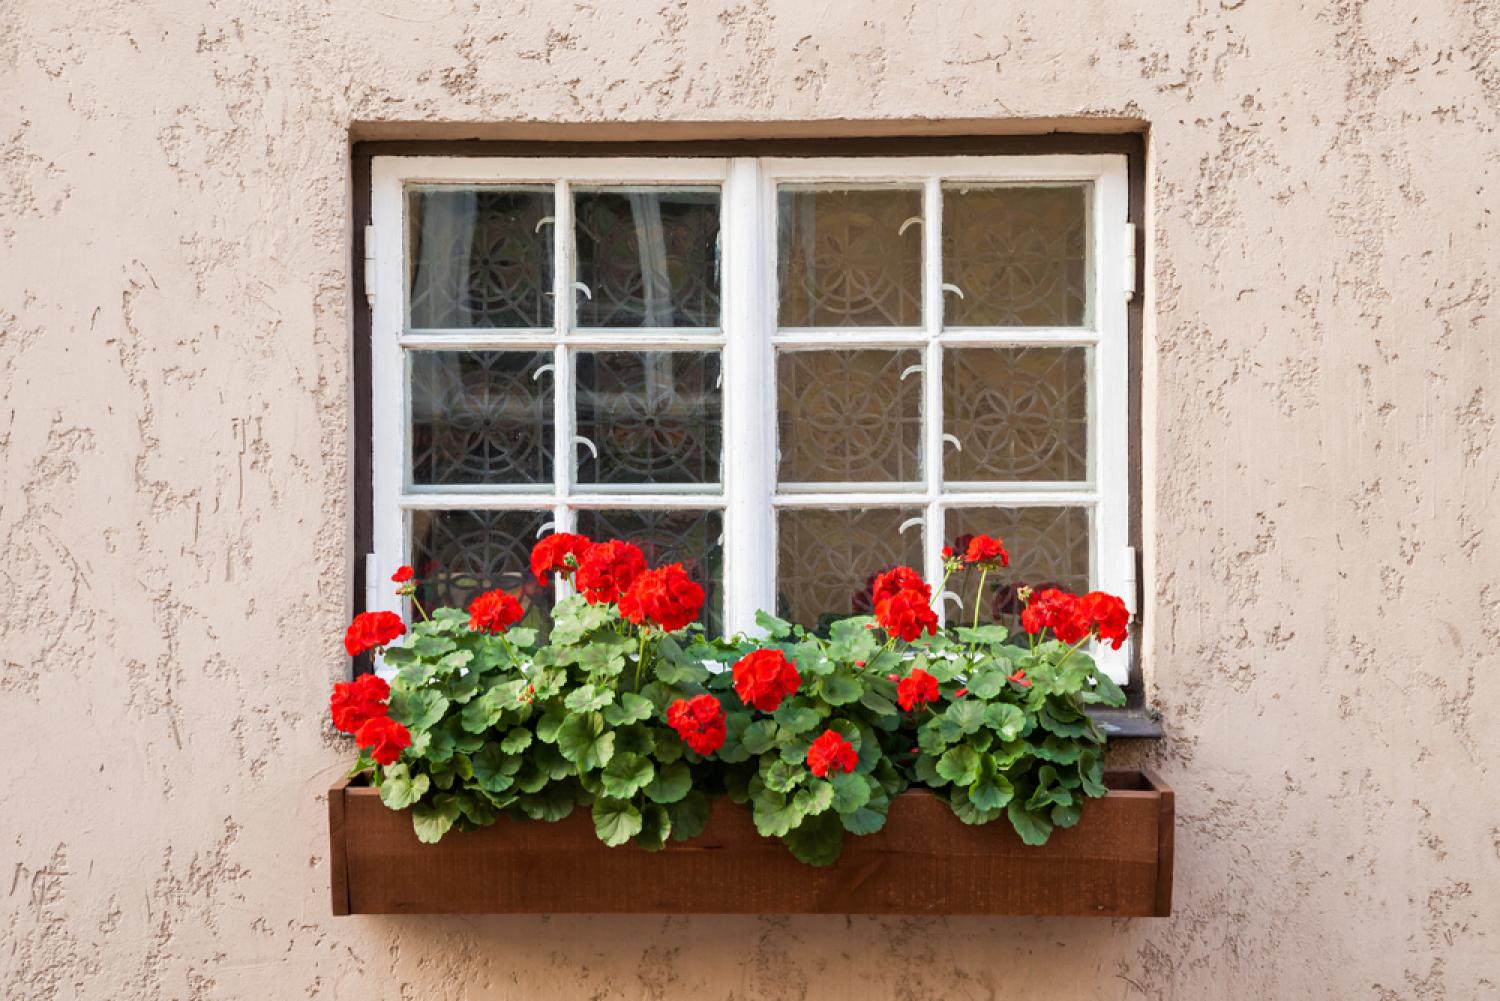 Window Boxes, Planter Boxes, Hanging Planters 100 Pictures of geraniums in window boxes